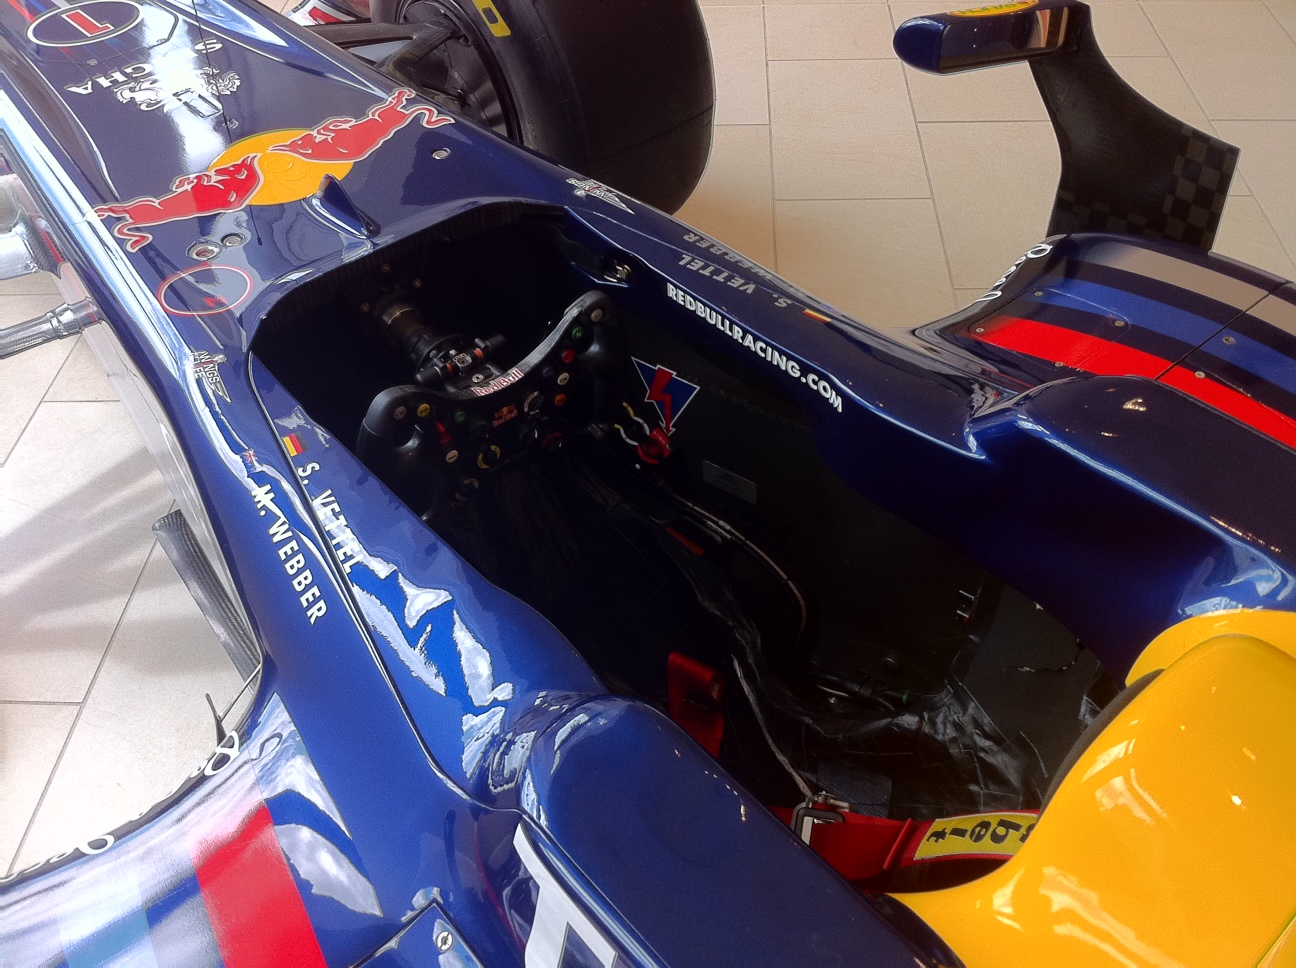 vettel-2010-f1-car-rb6-in-mayfair-london-ns-cockpit